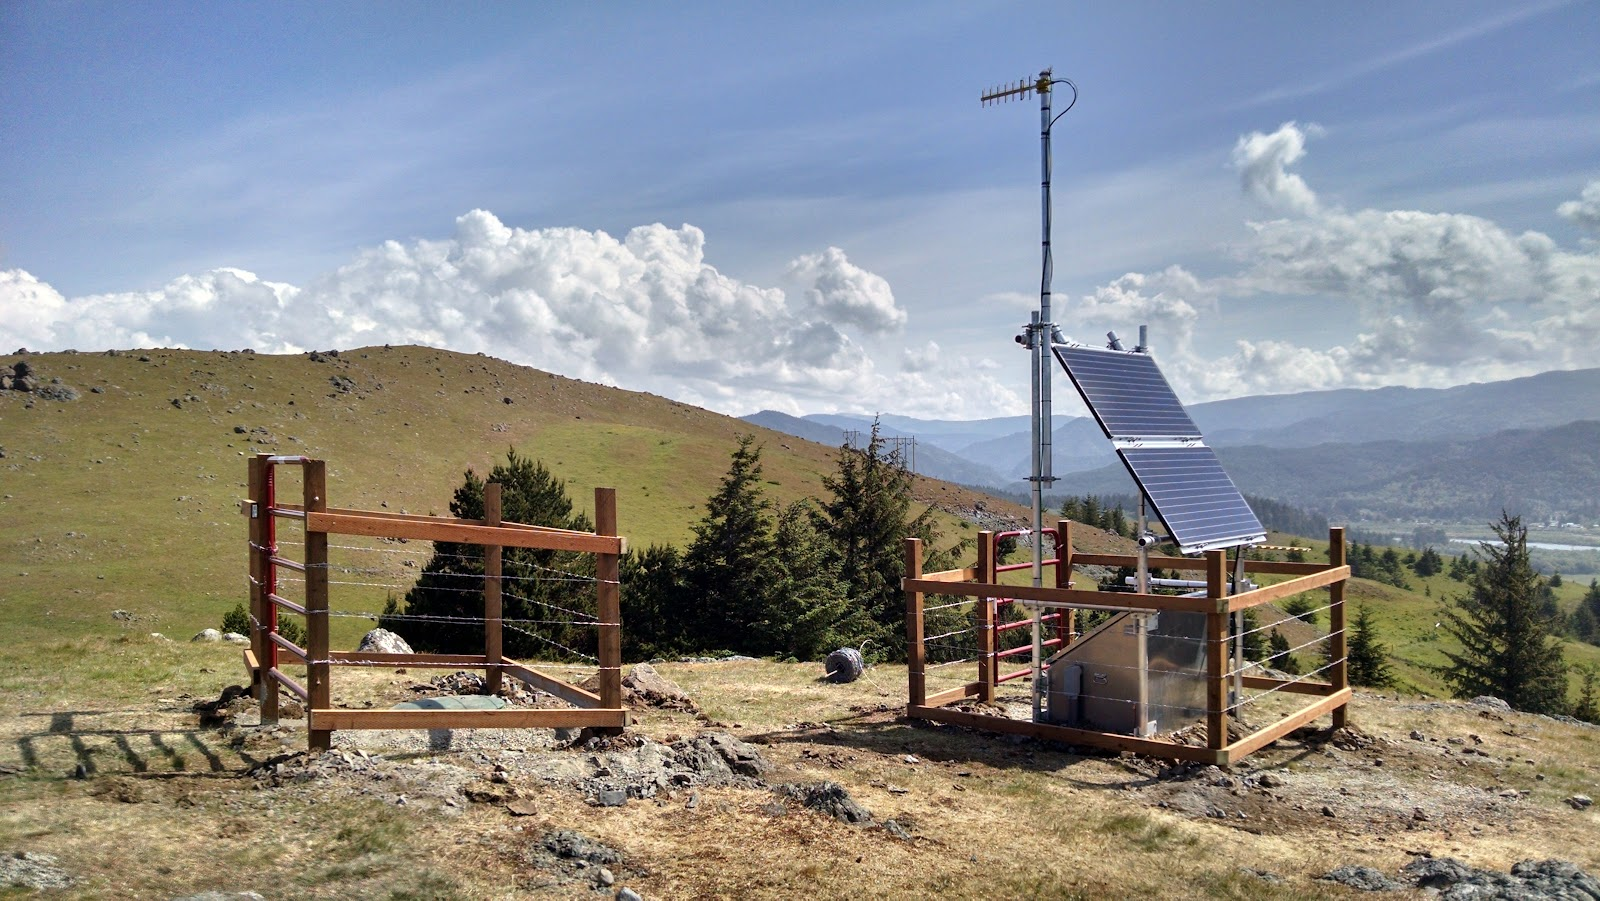 Seismic Station WEDR, located in Wedderburn, OR. This station, and others across Oregon, contribute data to ShakeAlert®.